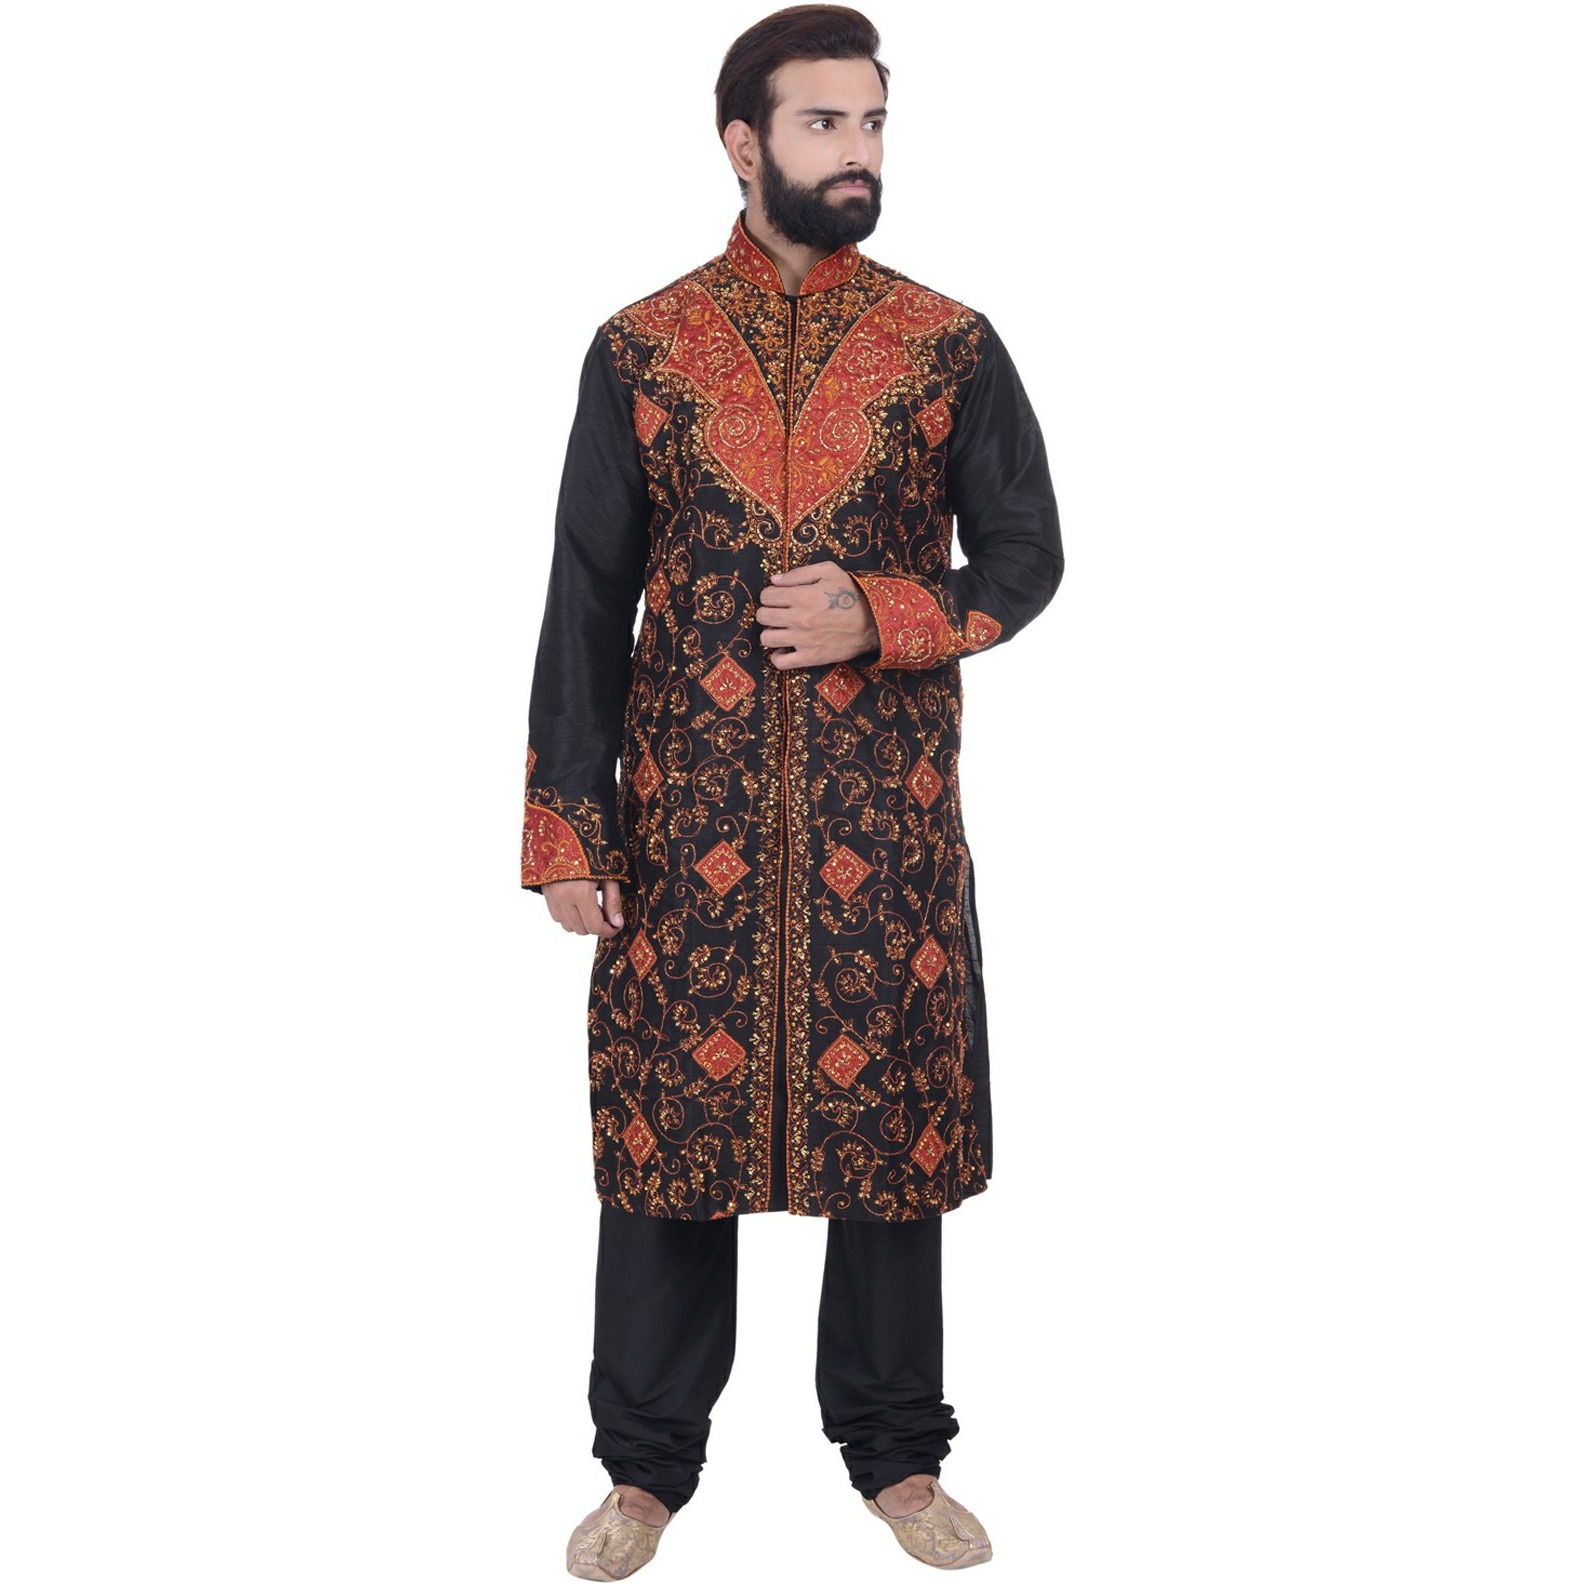 Indian Bollywood Design Black Kurta Sherwani For Men's 2pc Suit